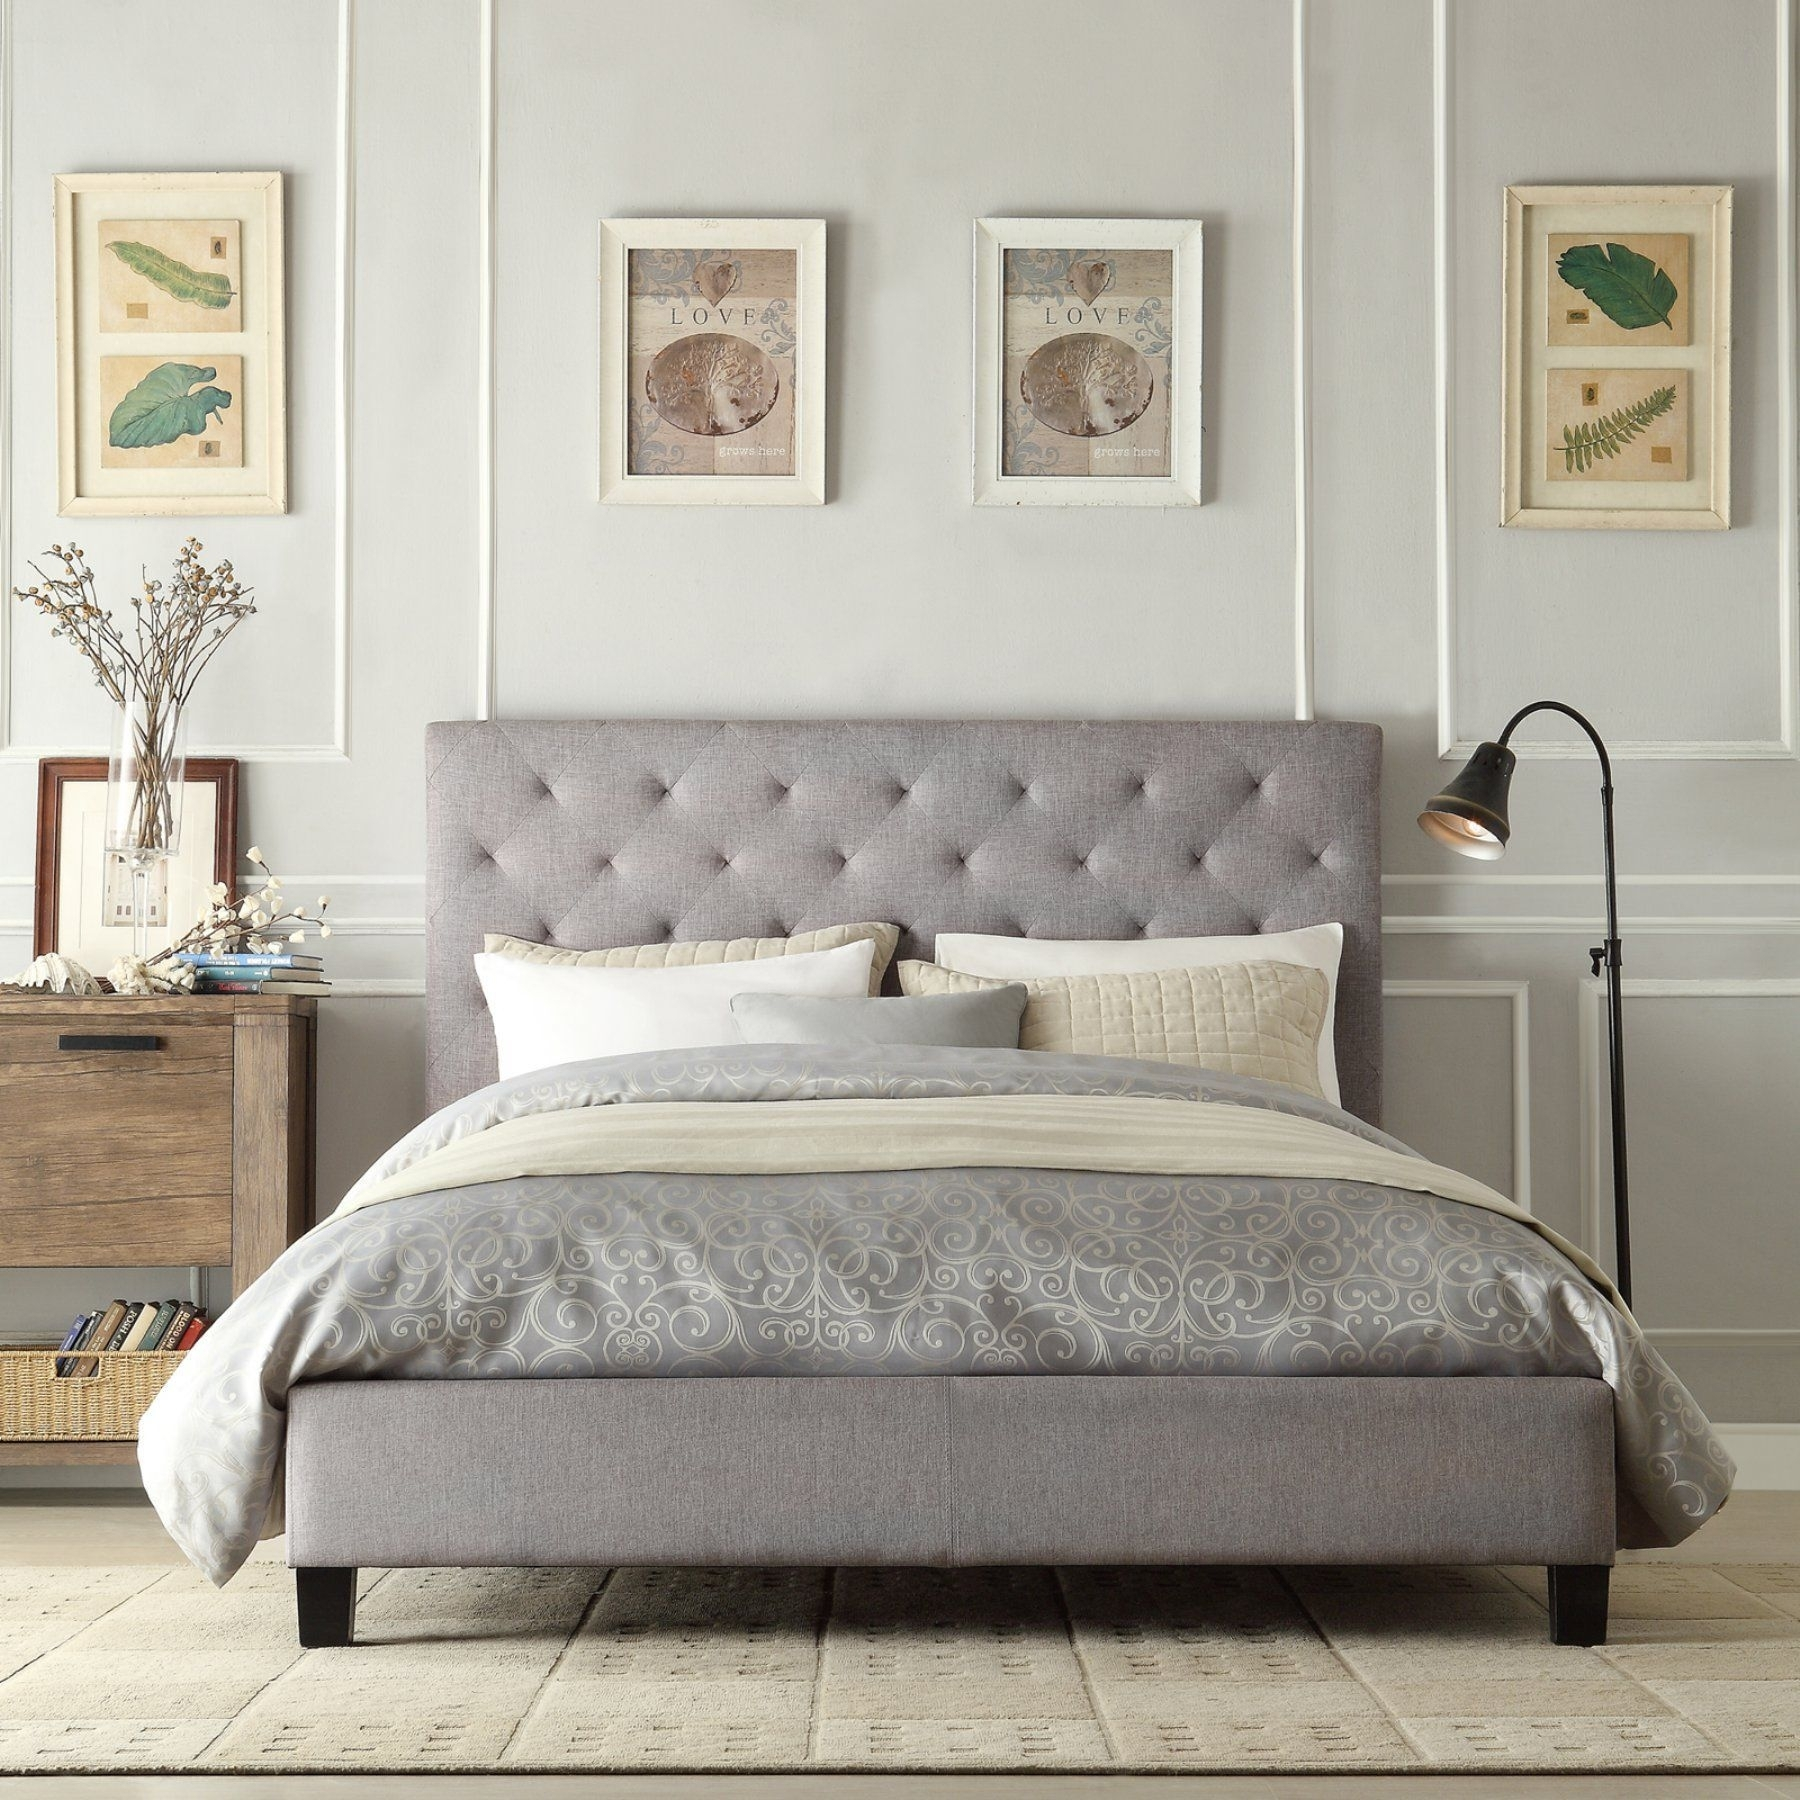 Upholstered Headboard Queen Bed Ideas On Foter